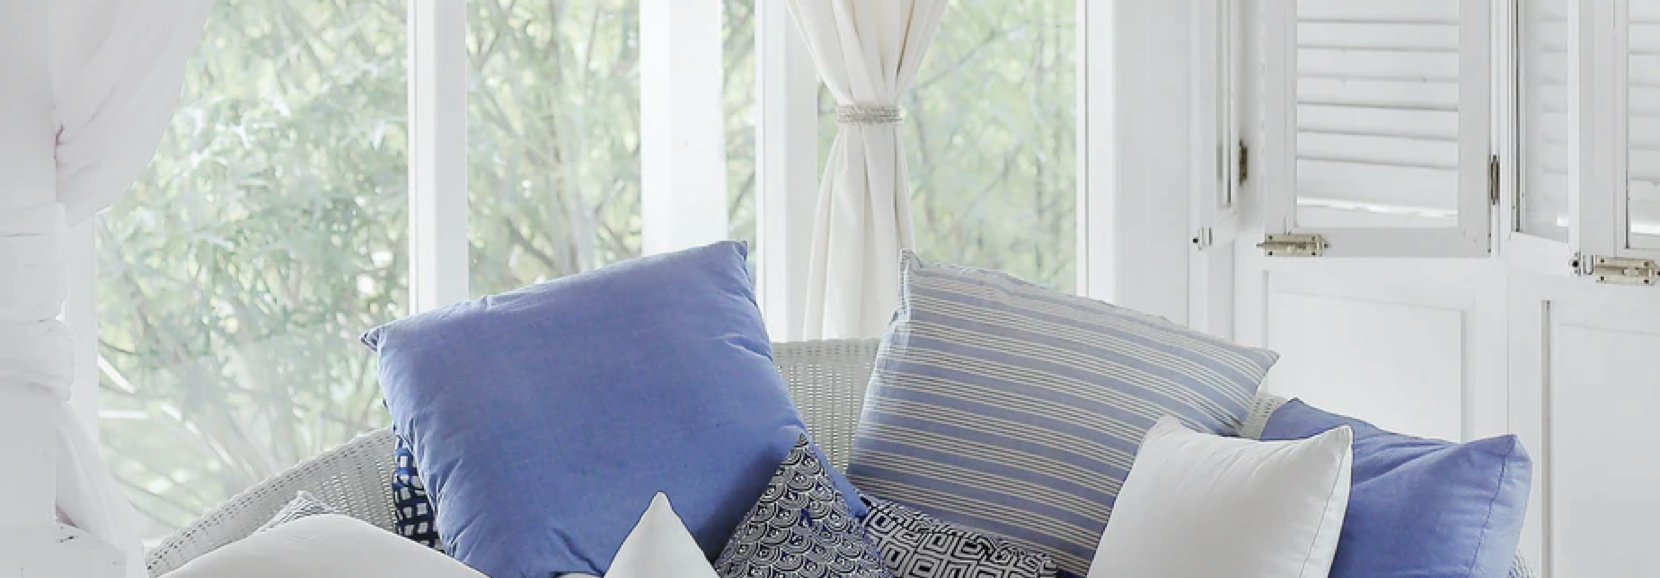 image of curtains and cushions